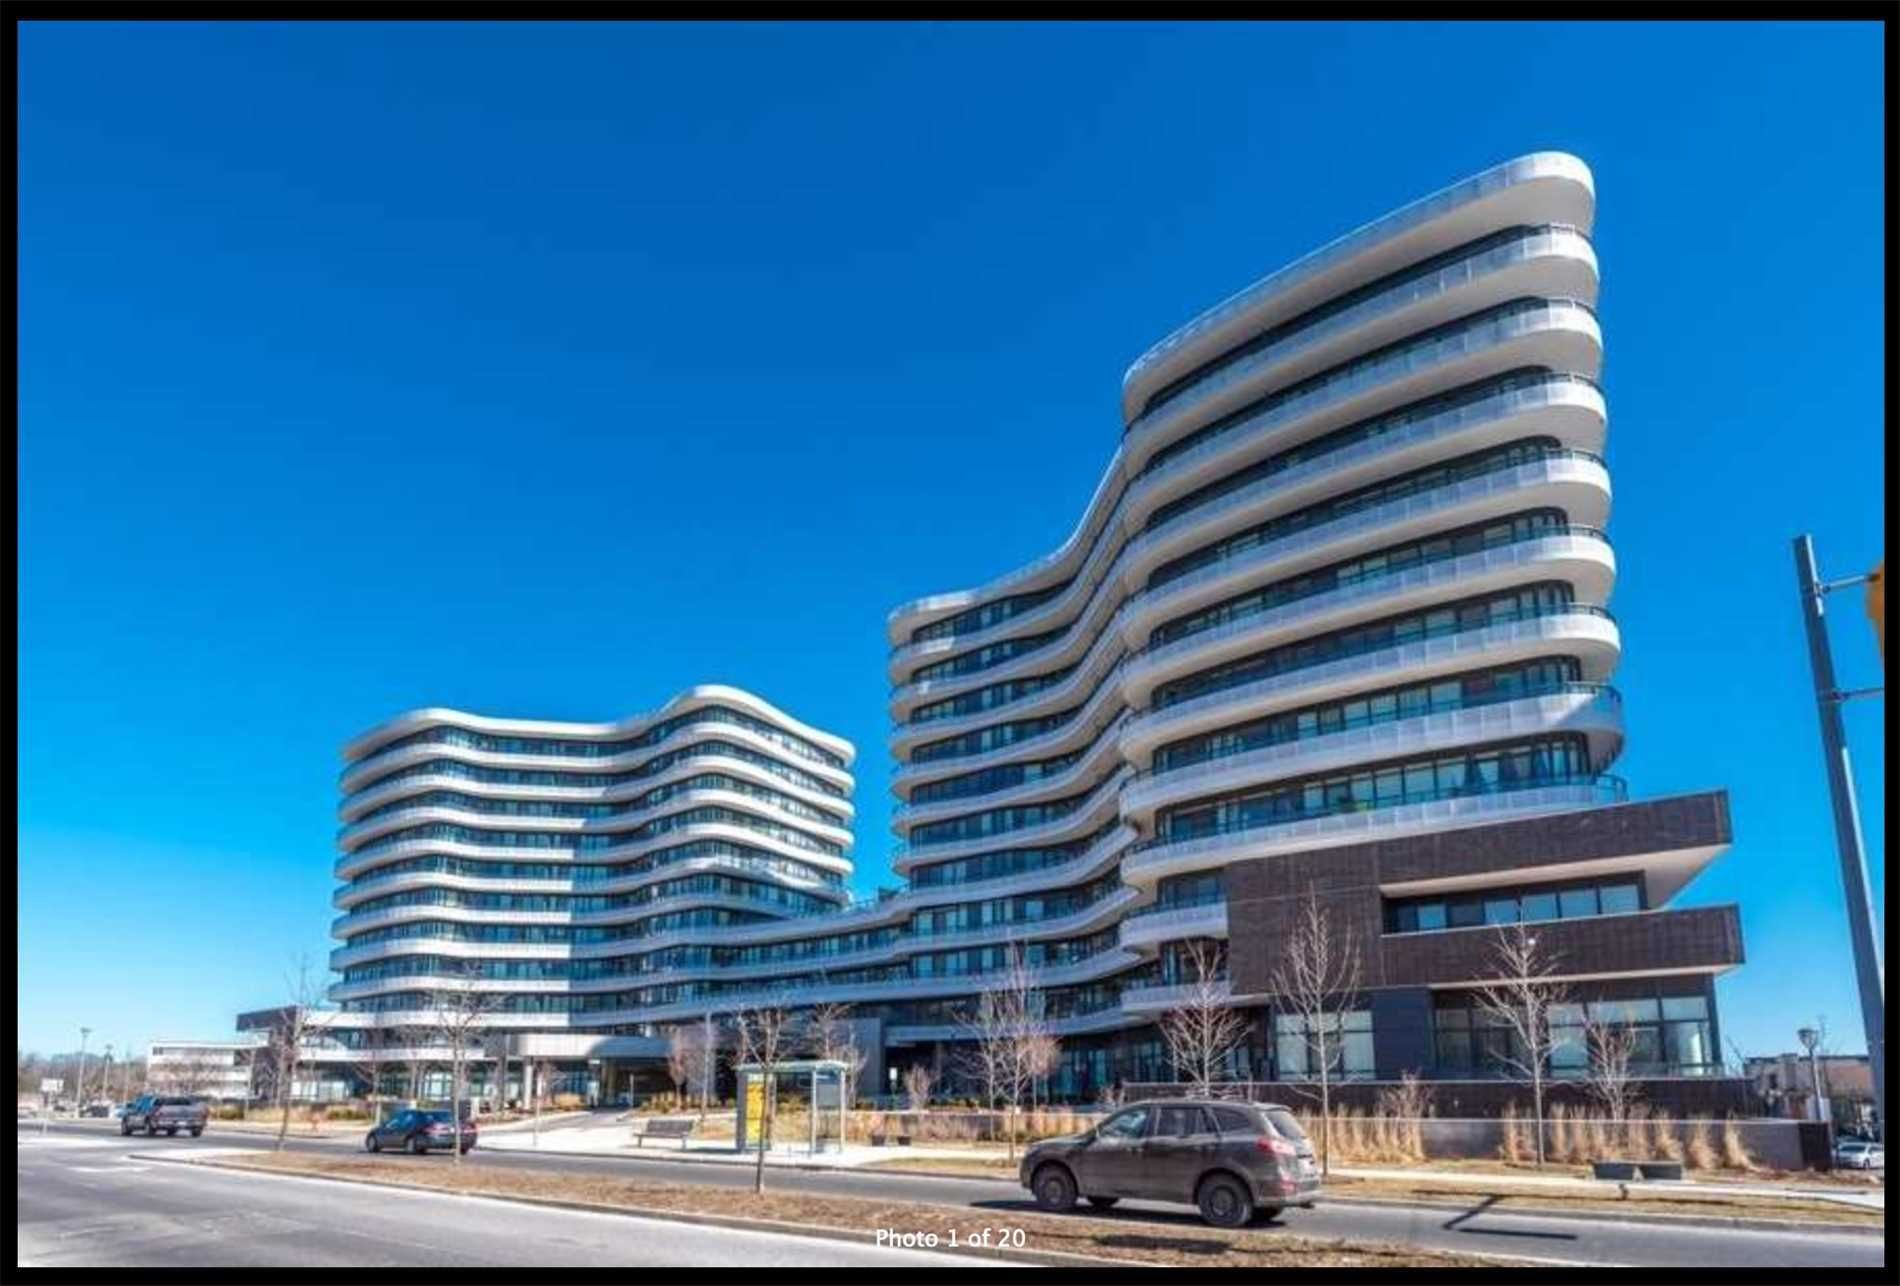 99 The Don Way W, unit 225 for rent in Toronto - image #1